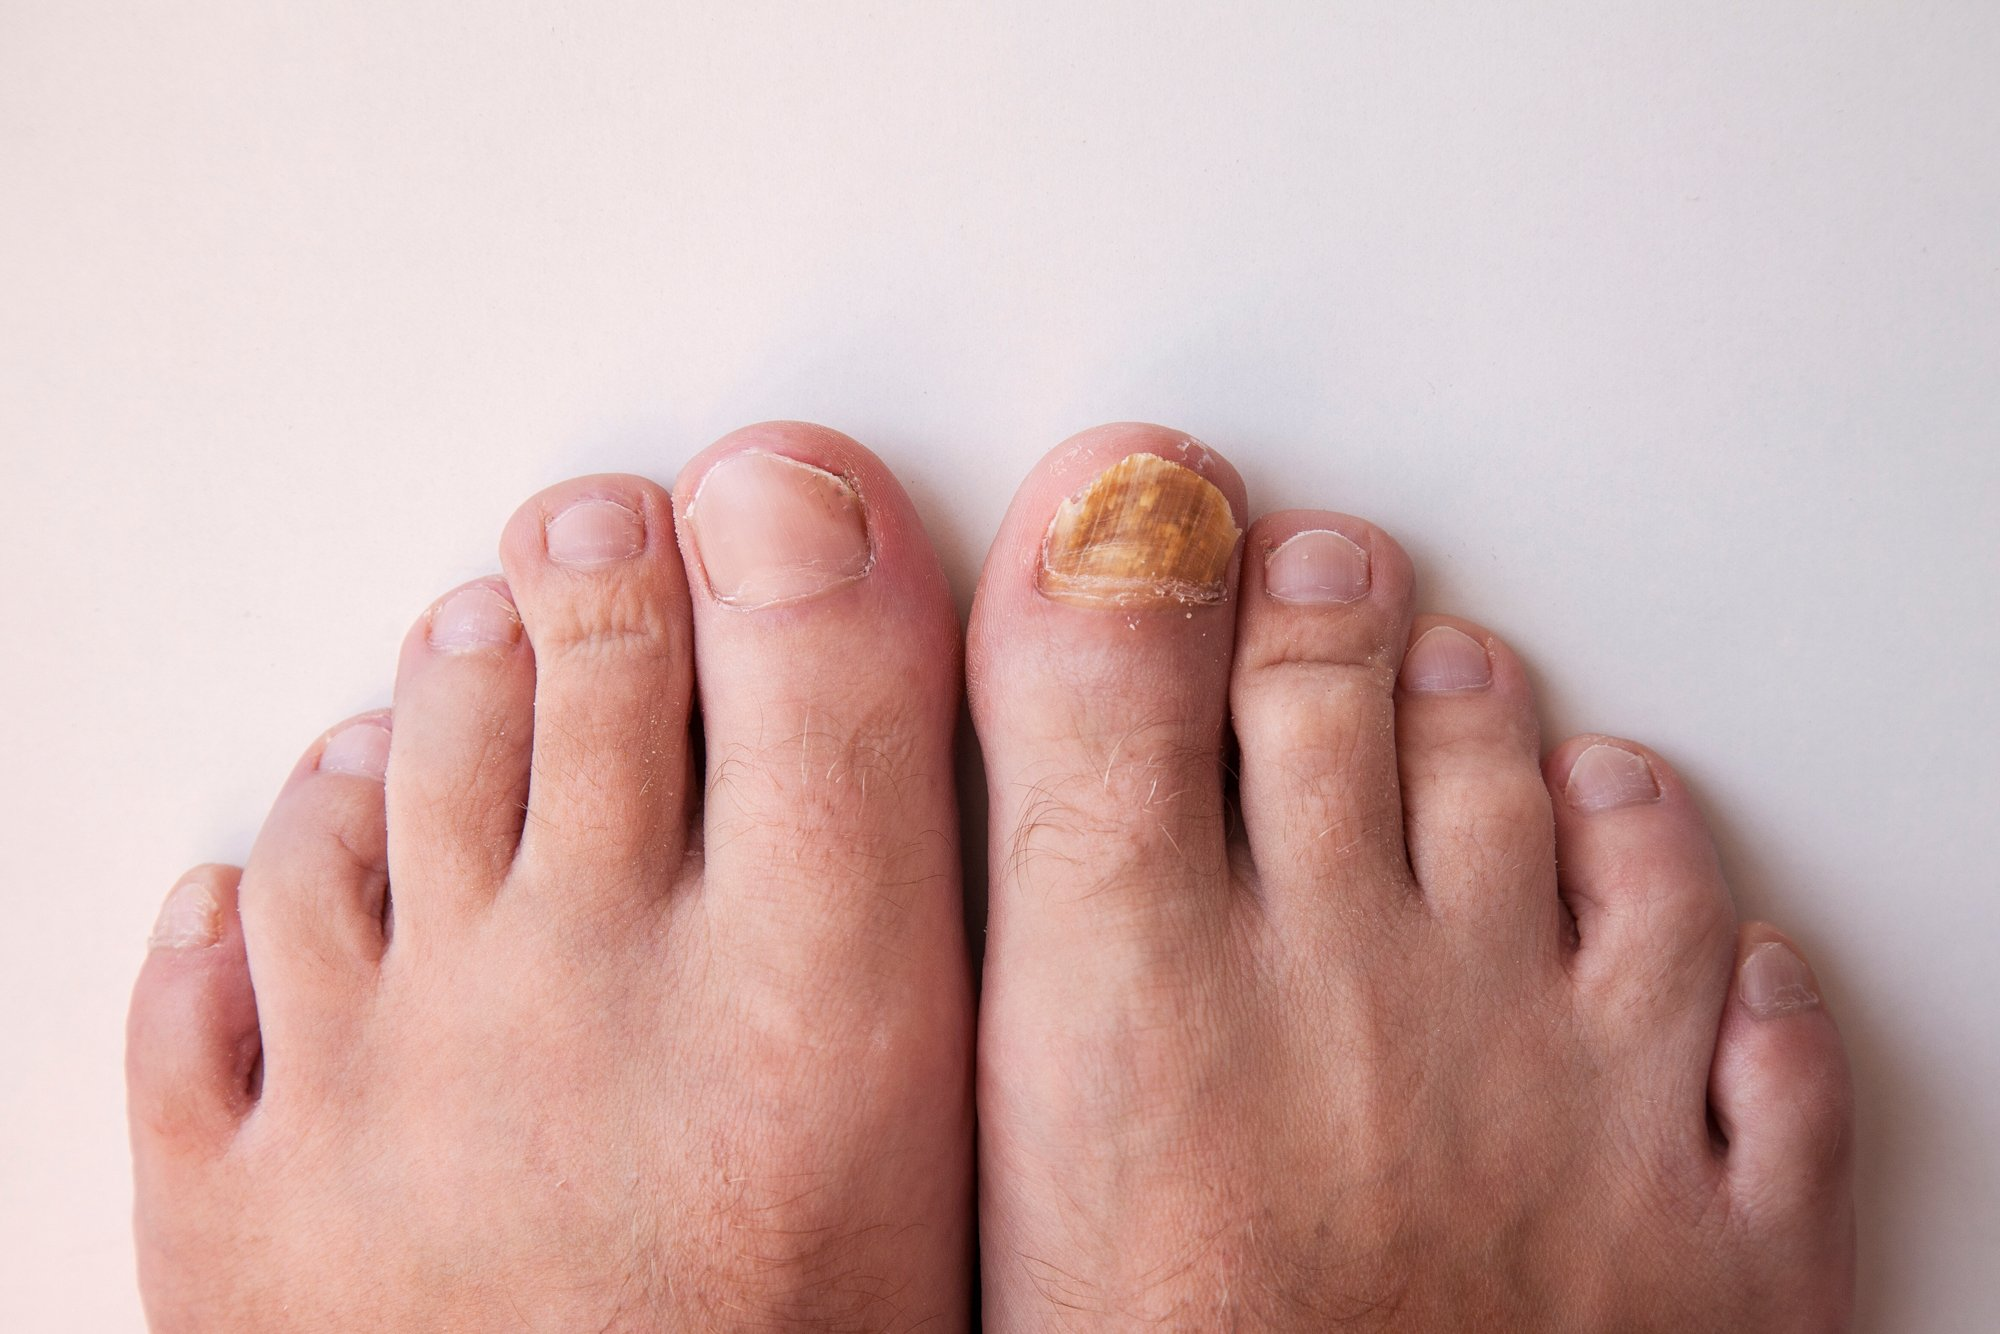 Man Addressing Toenail Fungus on Big Toe